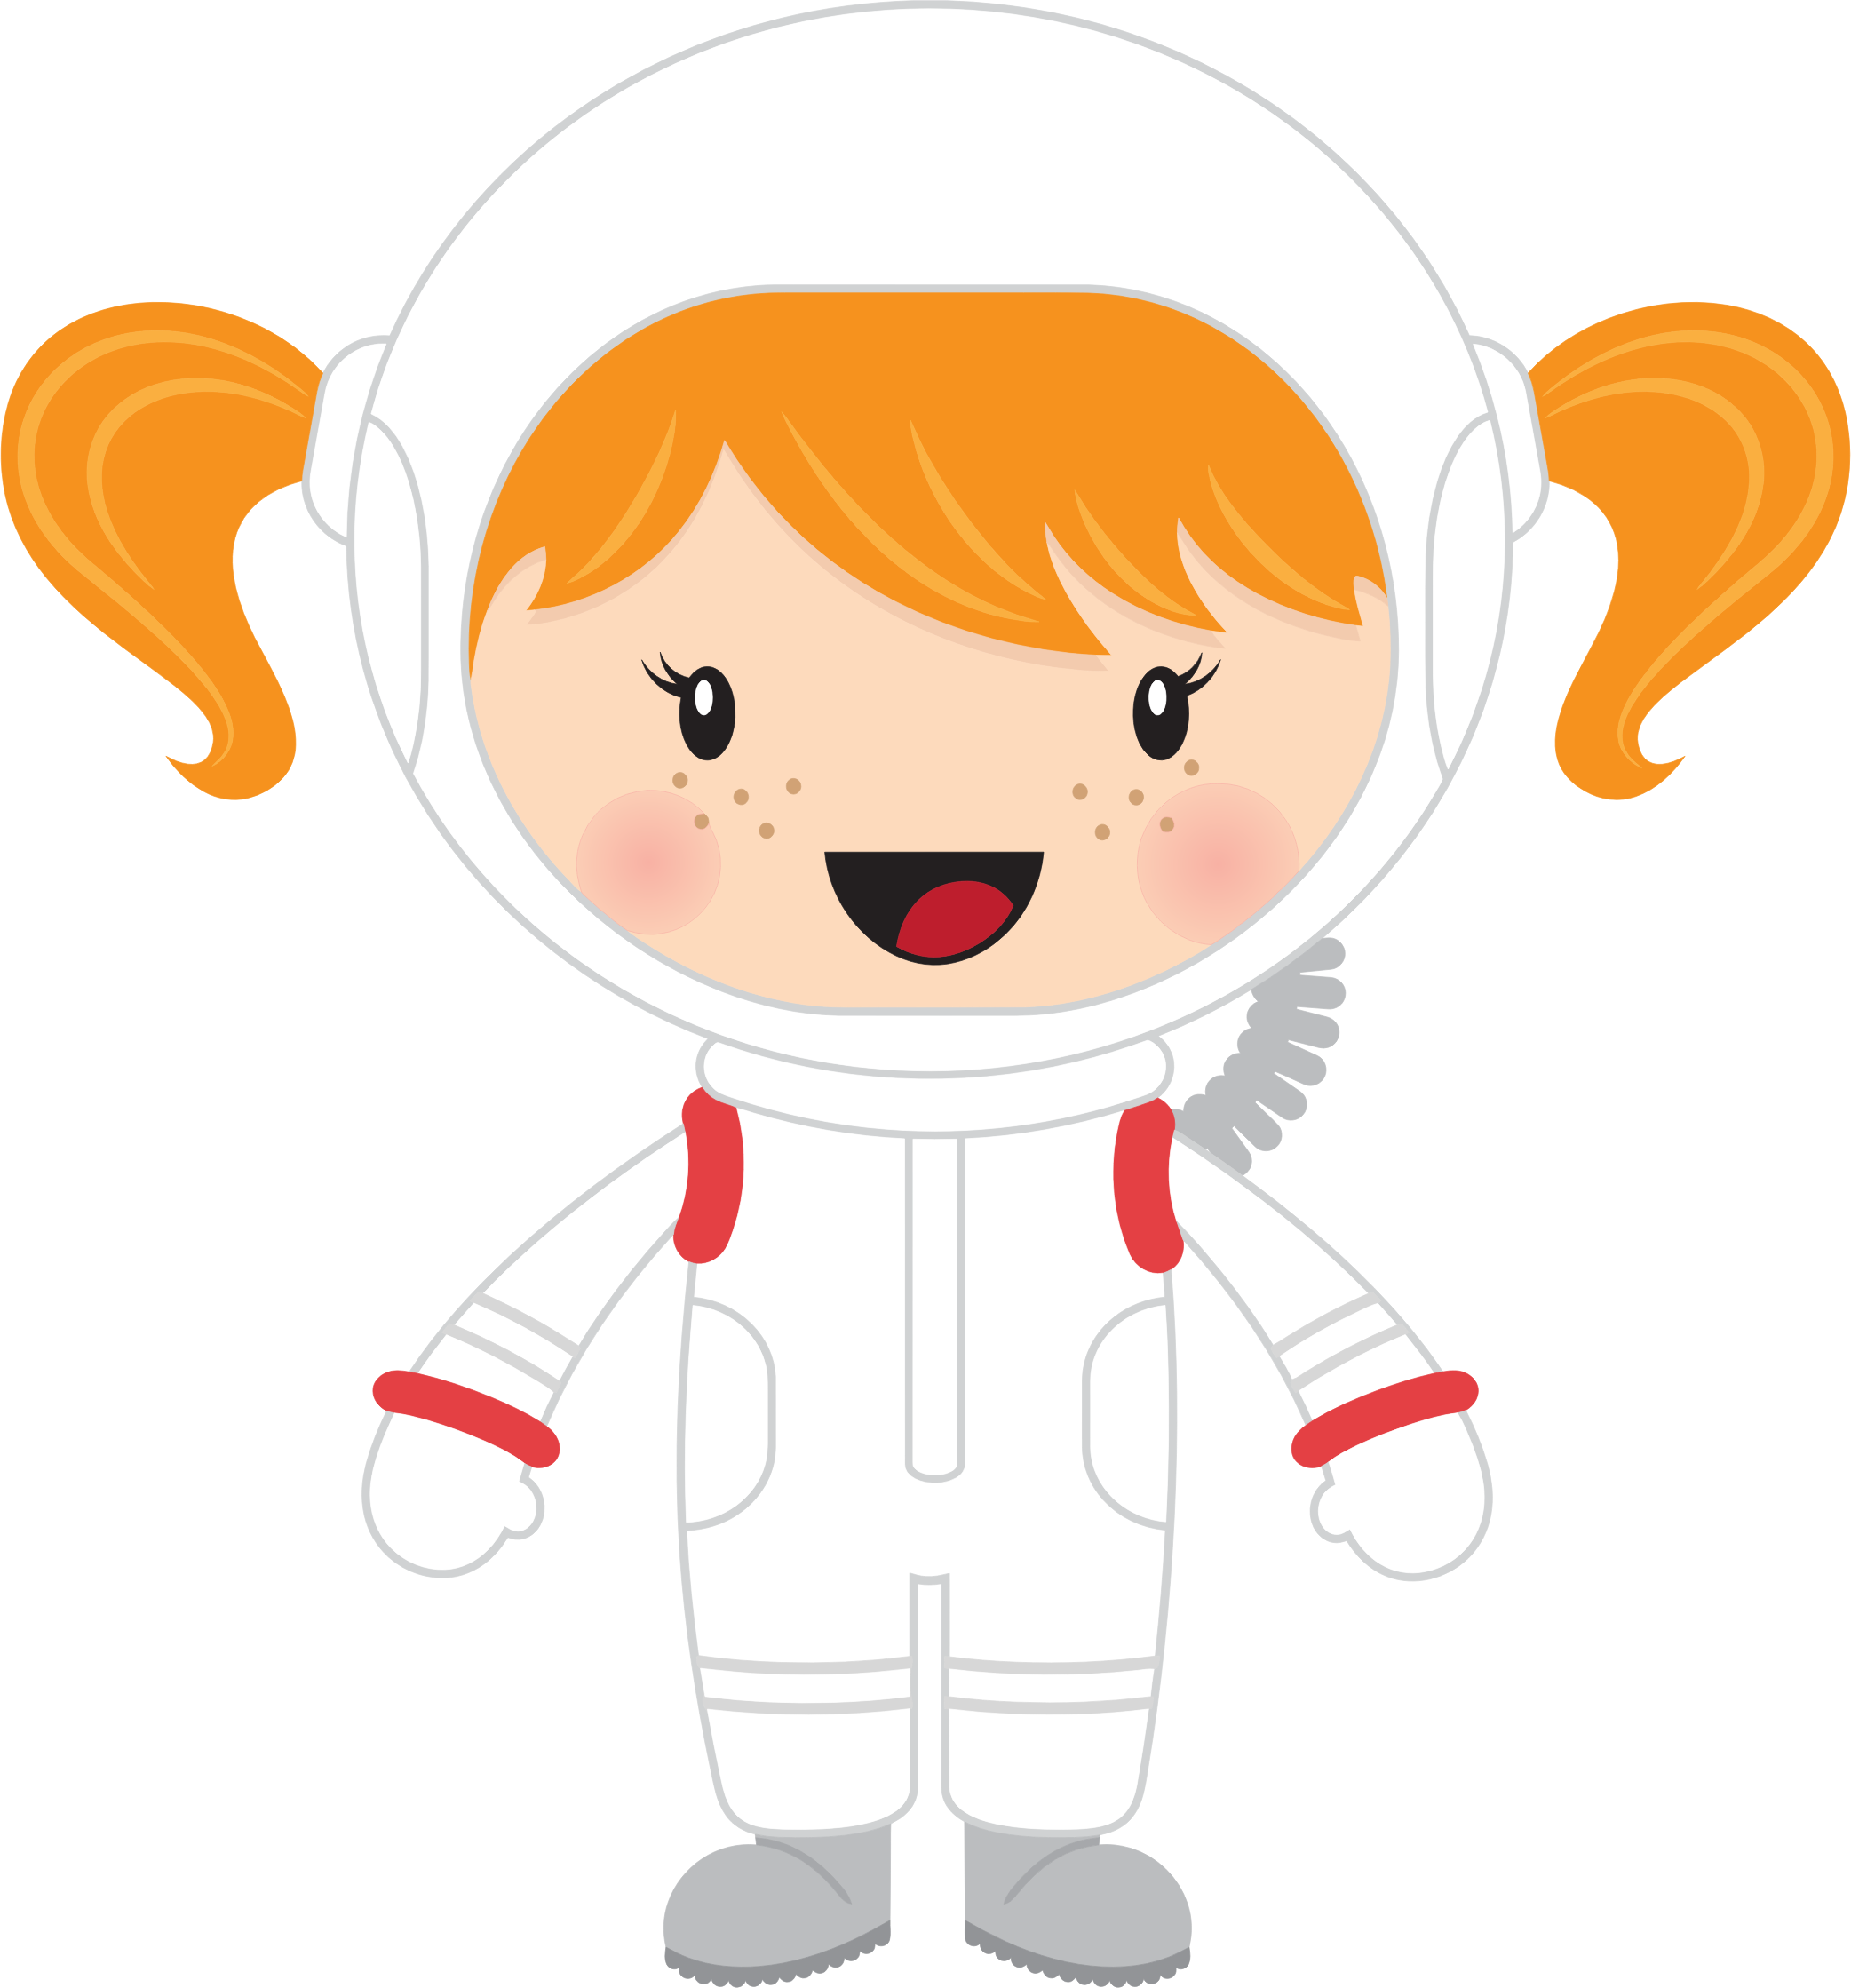 Galaxy clipart astronaut. Little girl big image